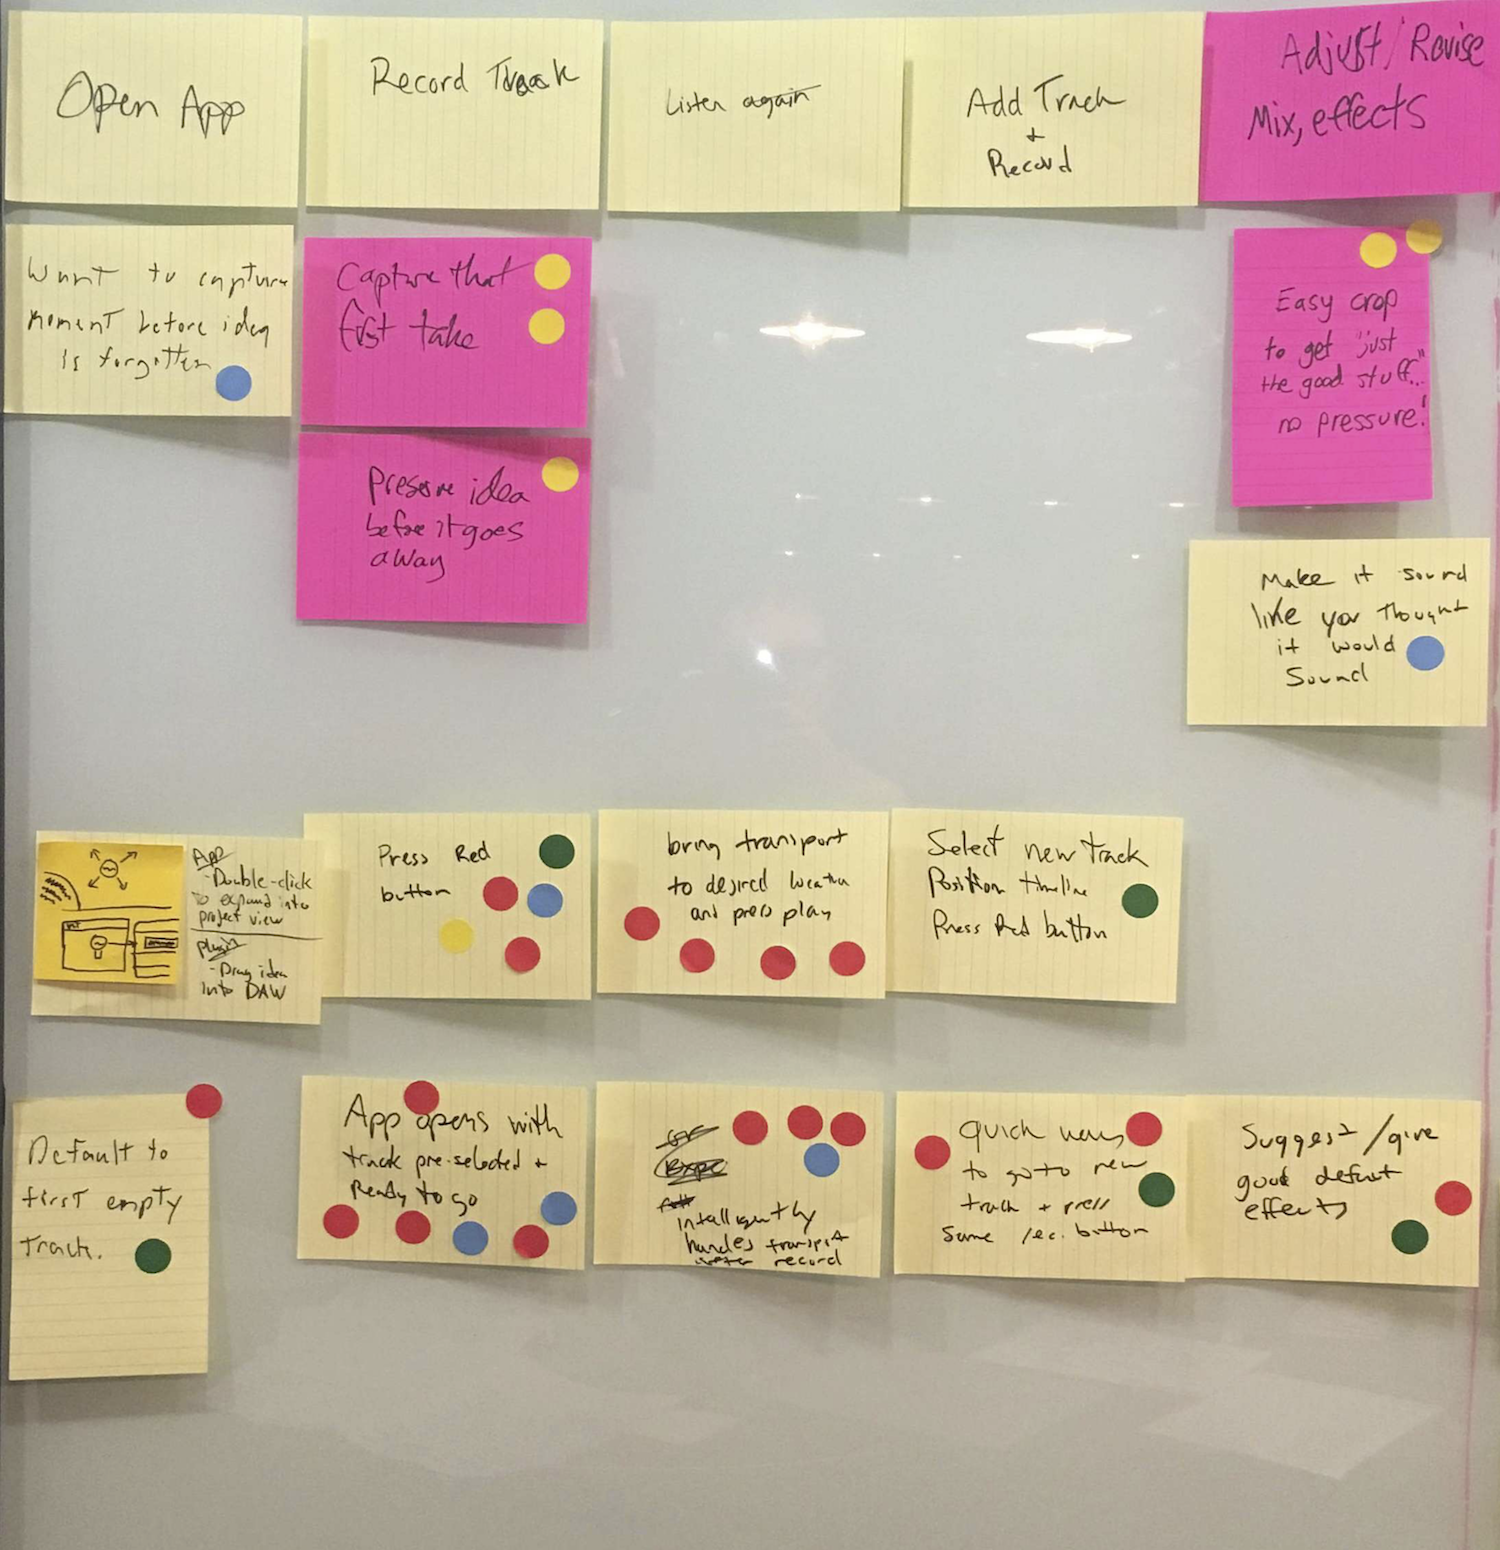 Another Journey Map, where the user journey is described by individual notes from left to right across the top of the wall. For each step of the journey, the cards underneath represent the teams' different ideas on how to solve the specific problem in each step of the journey.